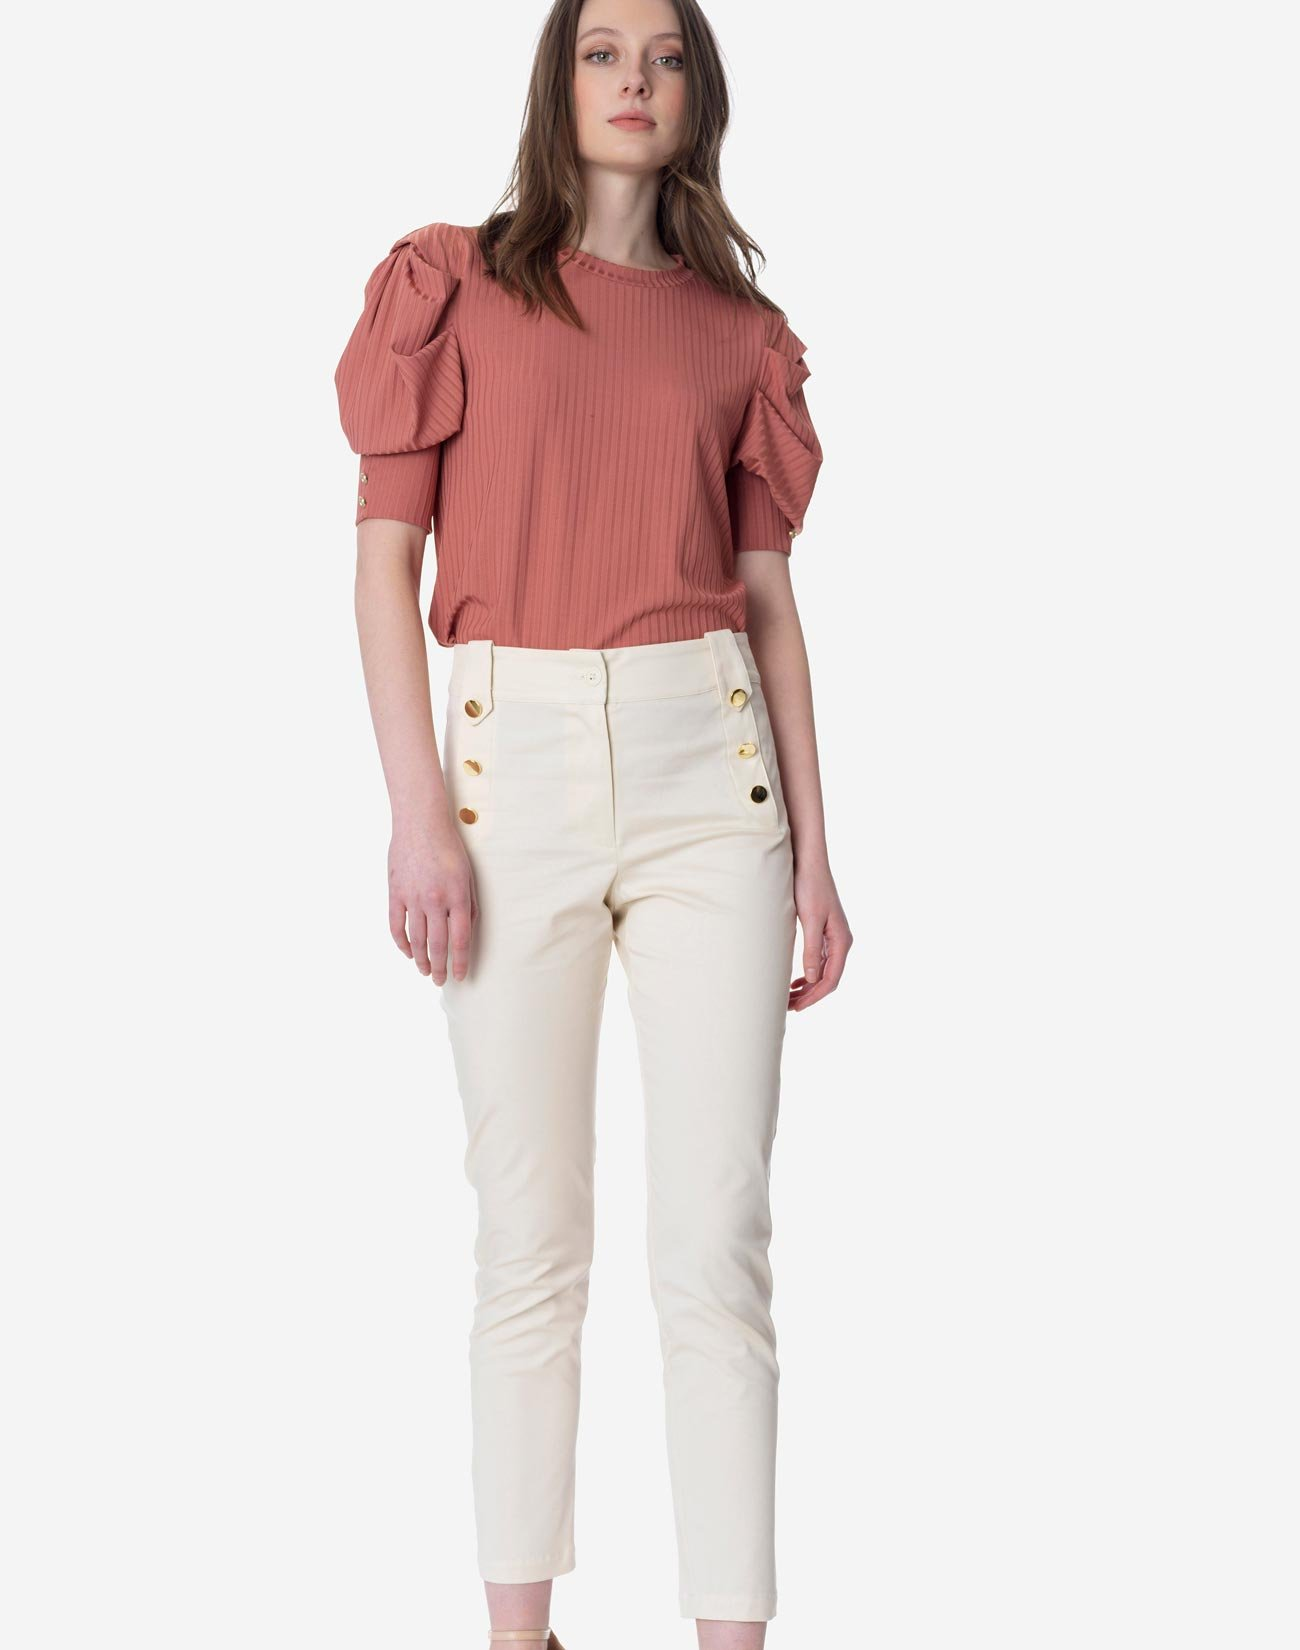 High waist trousers with gold buttons